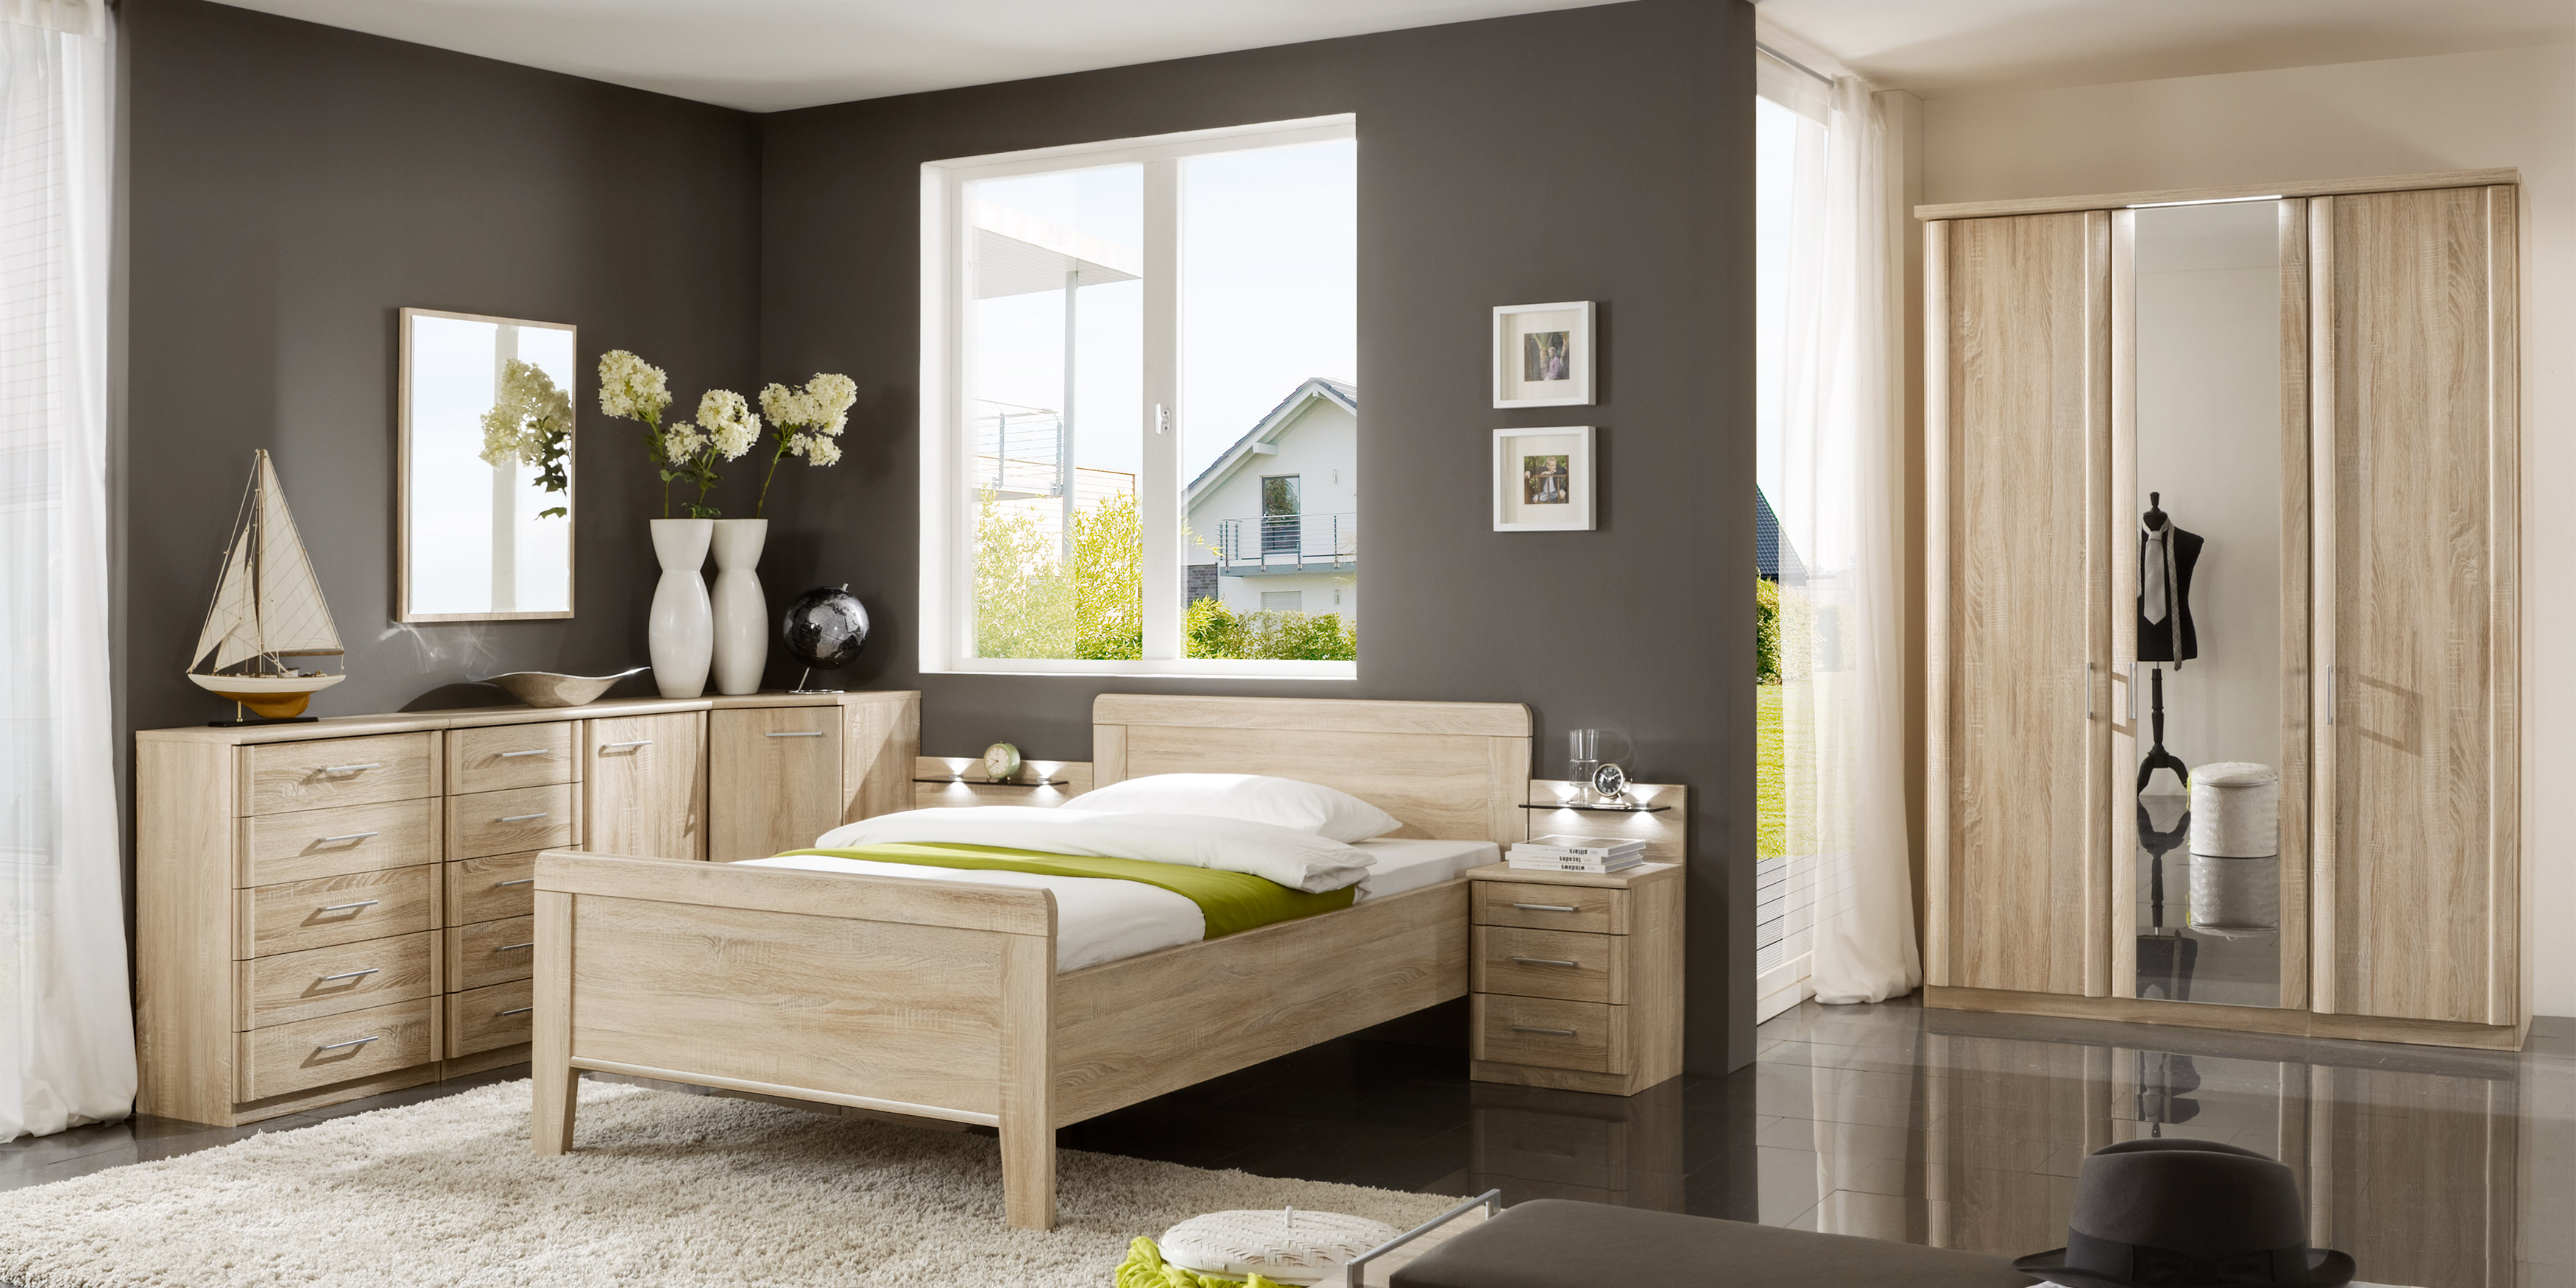 erleben sie das schlafzimmer meran m belhersteller wiemann. Black Bedroom Furniture Sets. Home Design Ideas